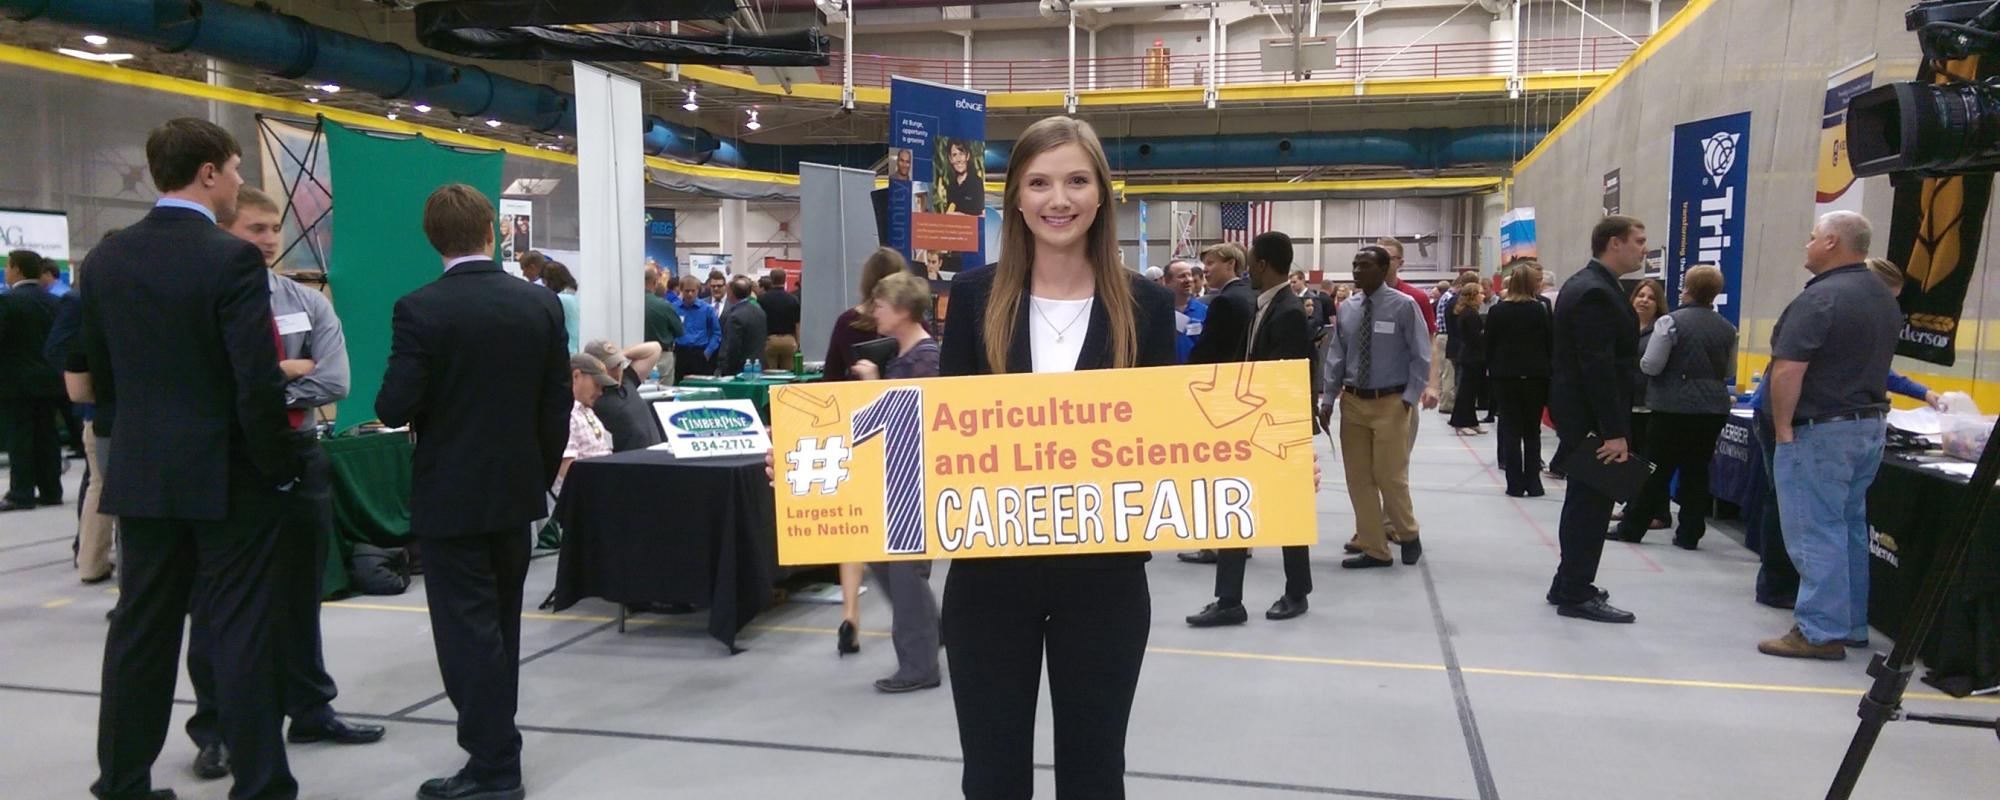 Student at career fair holding a sign that says: Largest in the nation #1 Agriculture and Life Sciences Career Fair